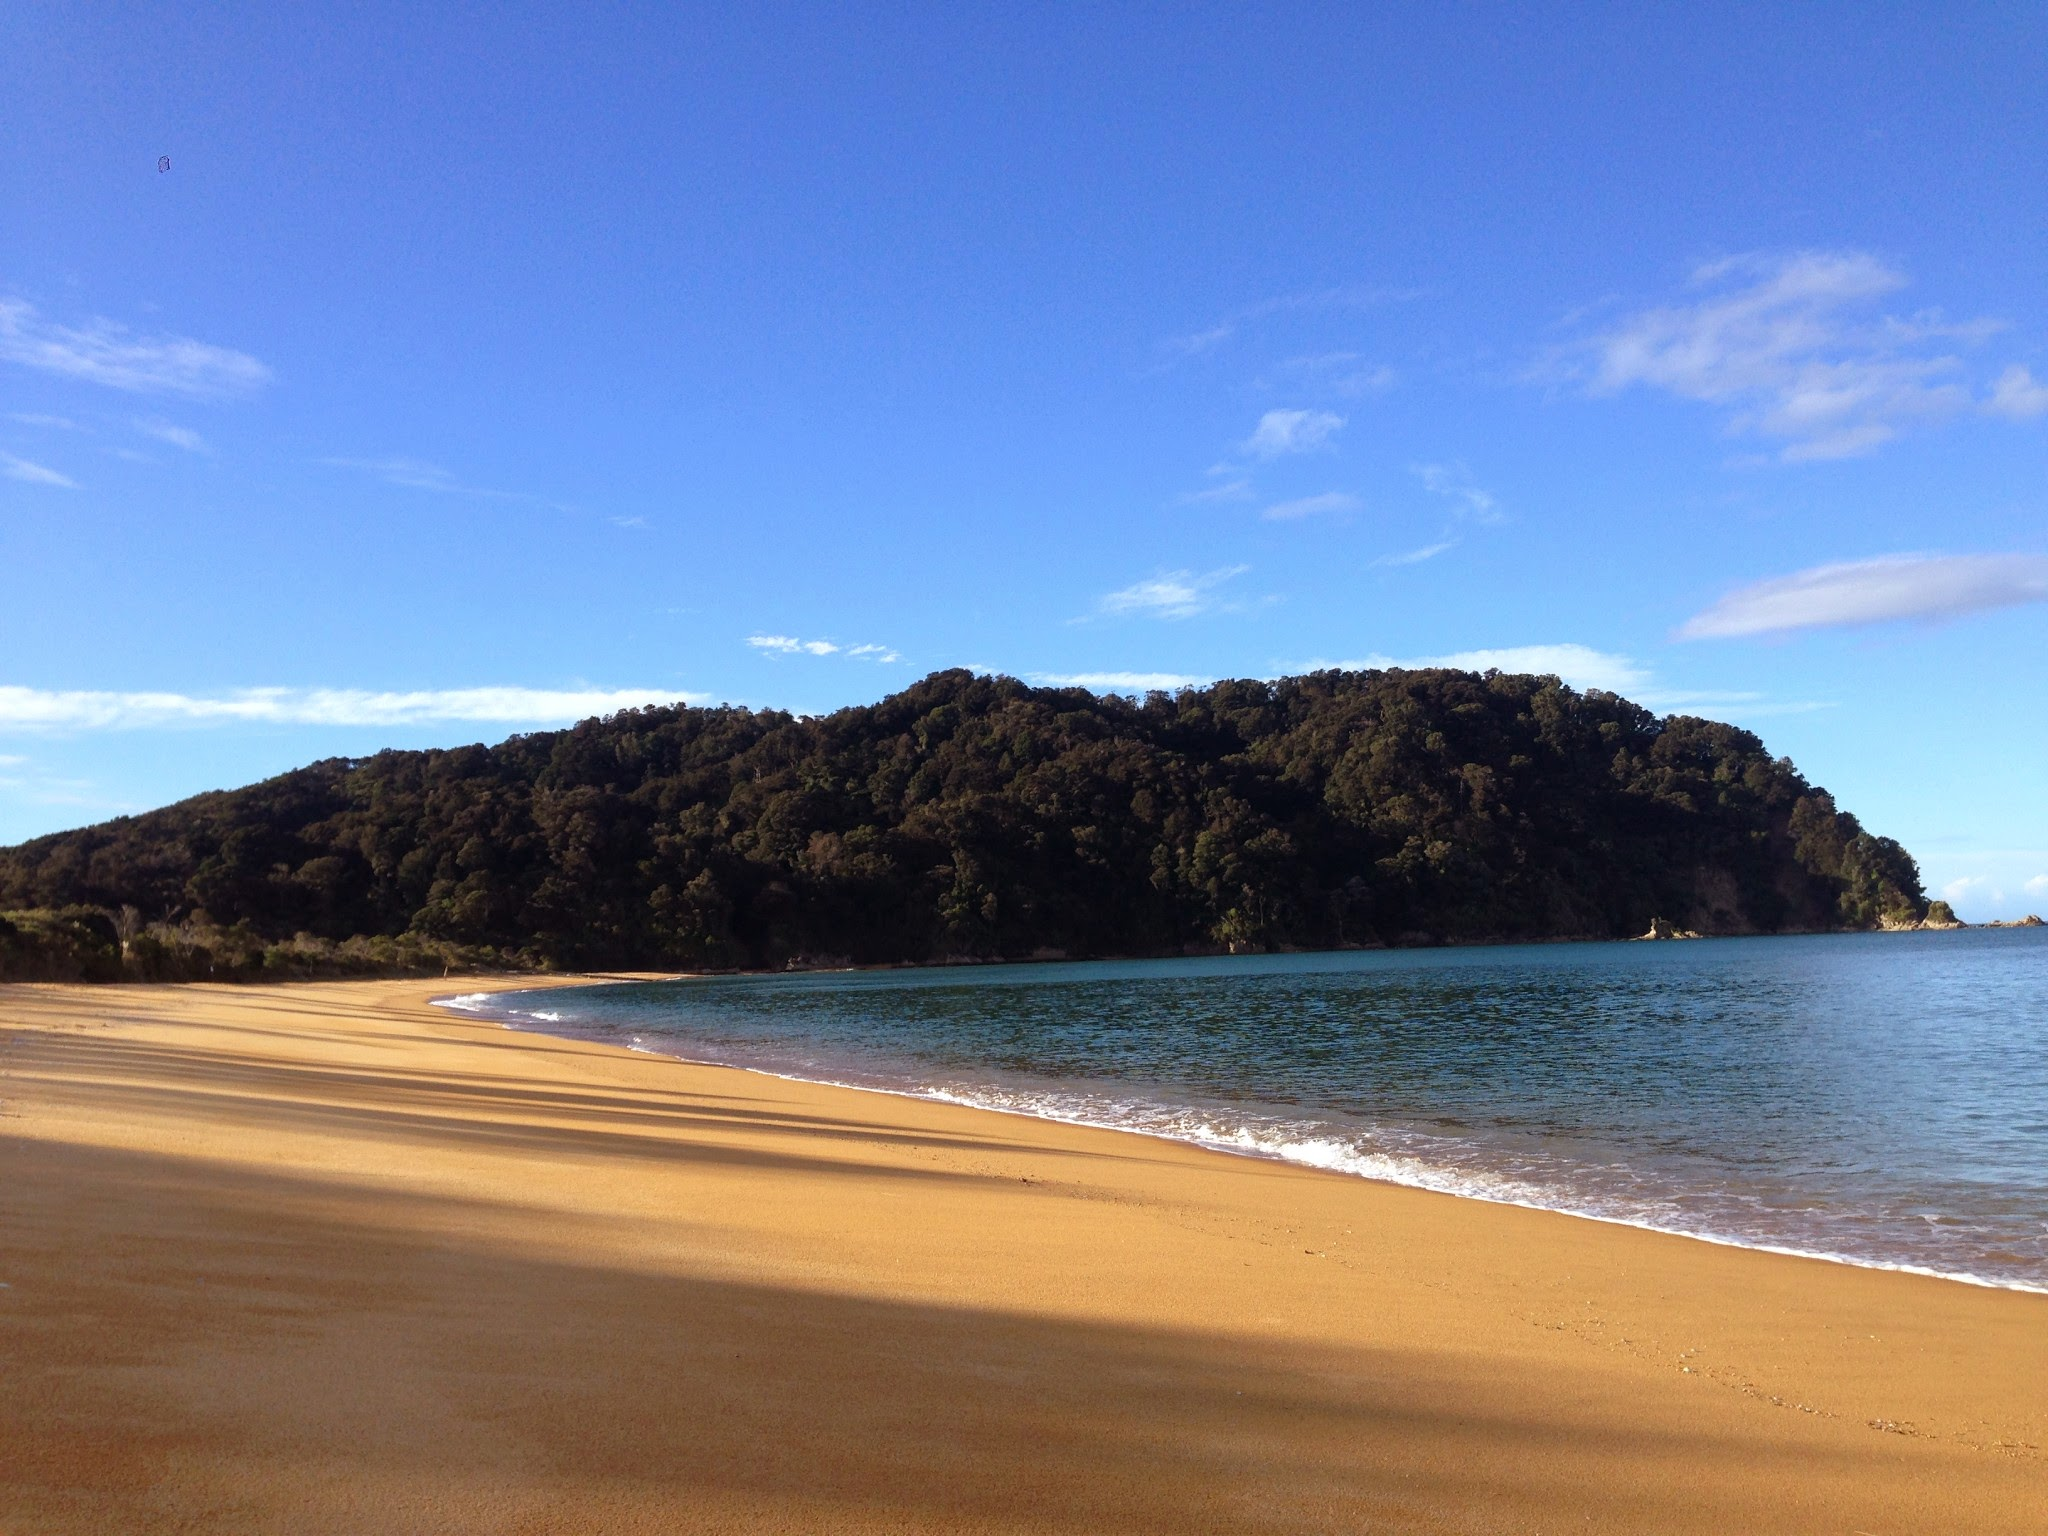 Abel Tasman, National park, Abel Tasman National Park, beaches, beach, sand